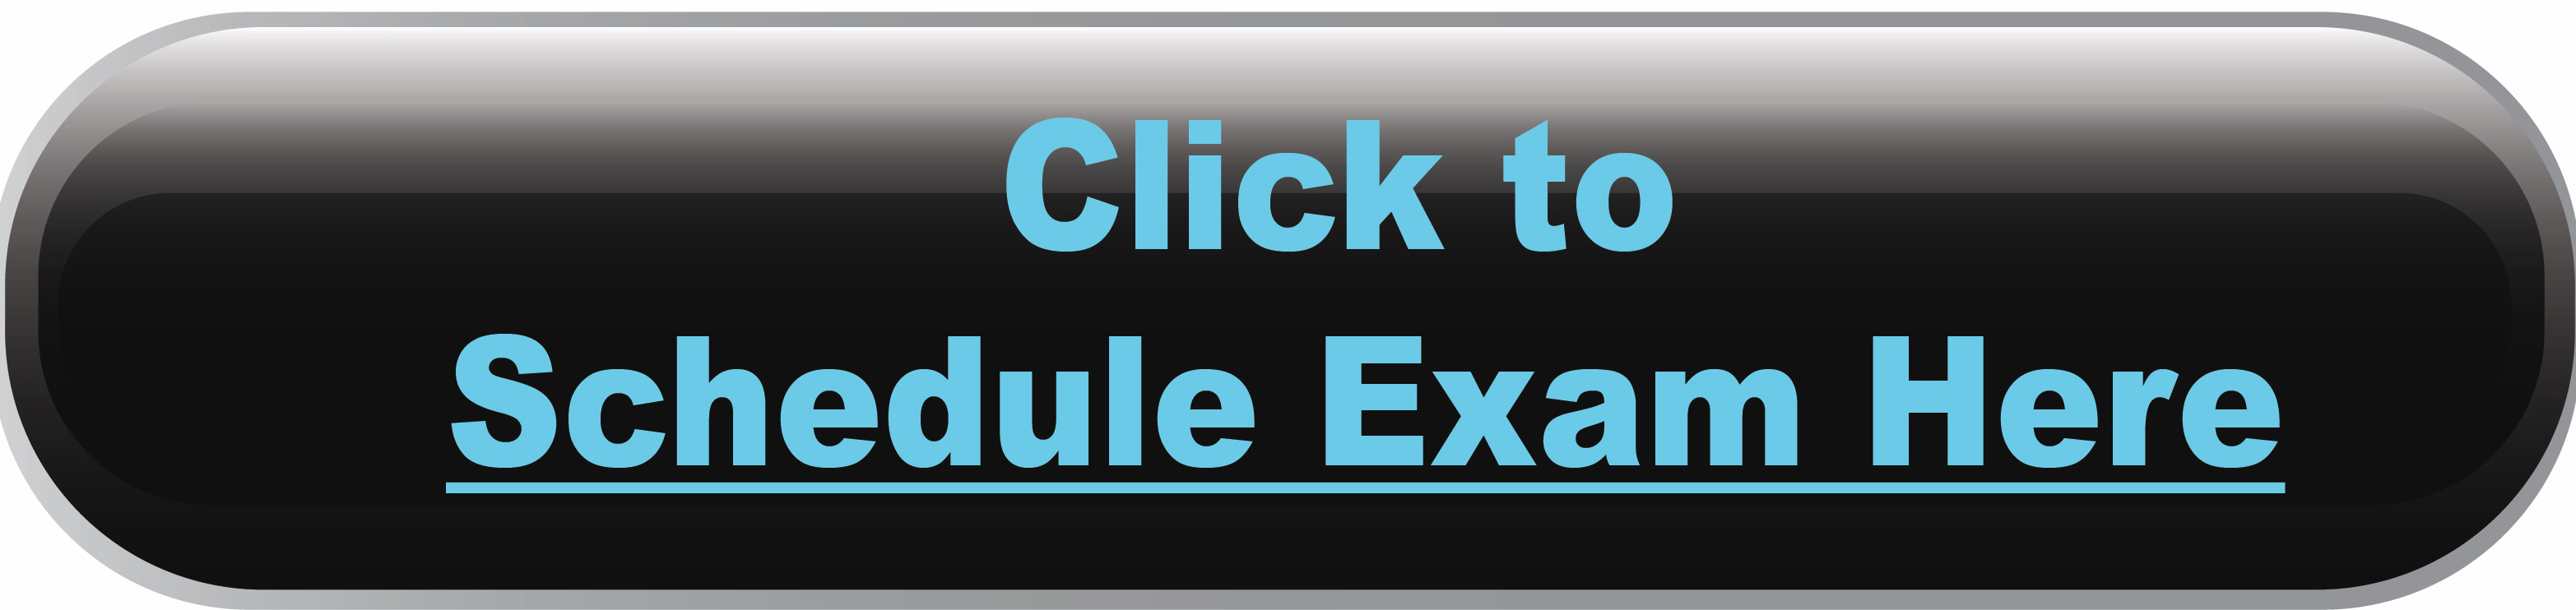 click to schedule exam here